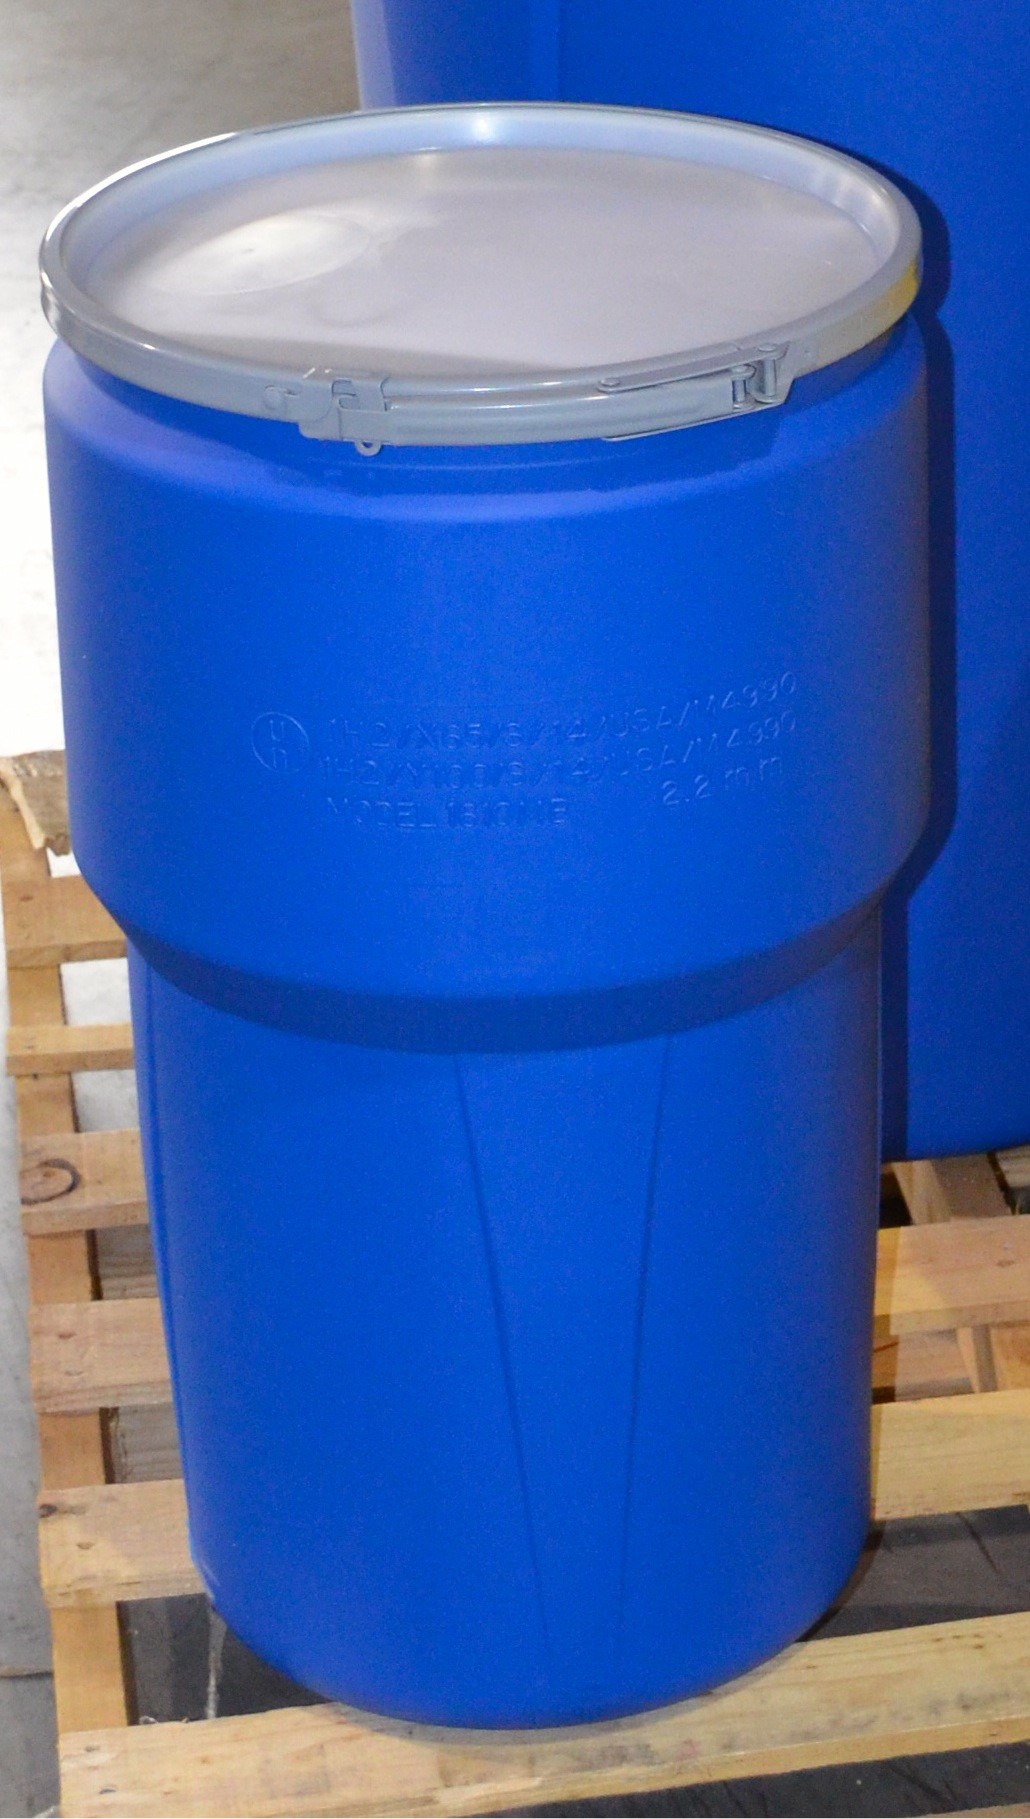 UN Rated Plastic Drum with Metal Locking Band